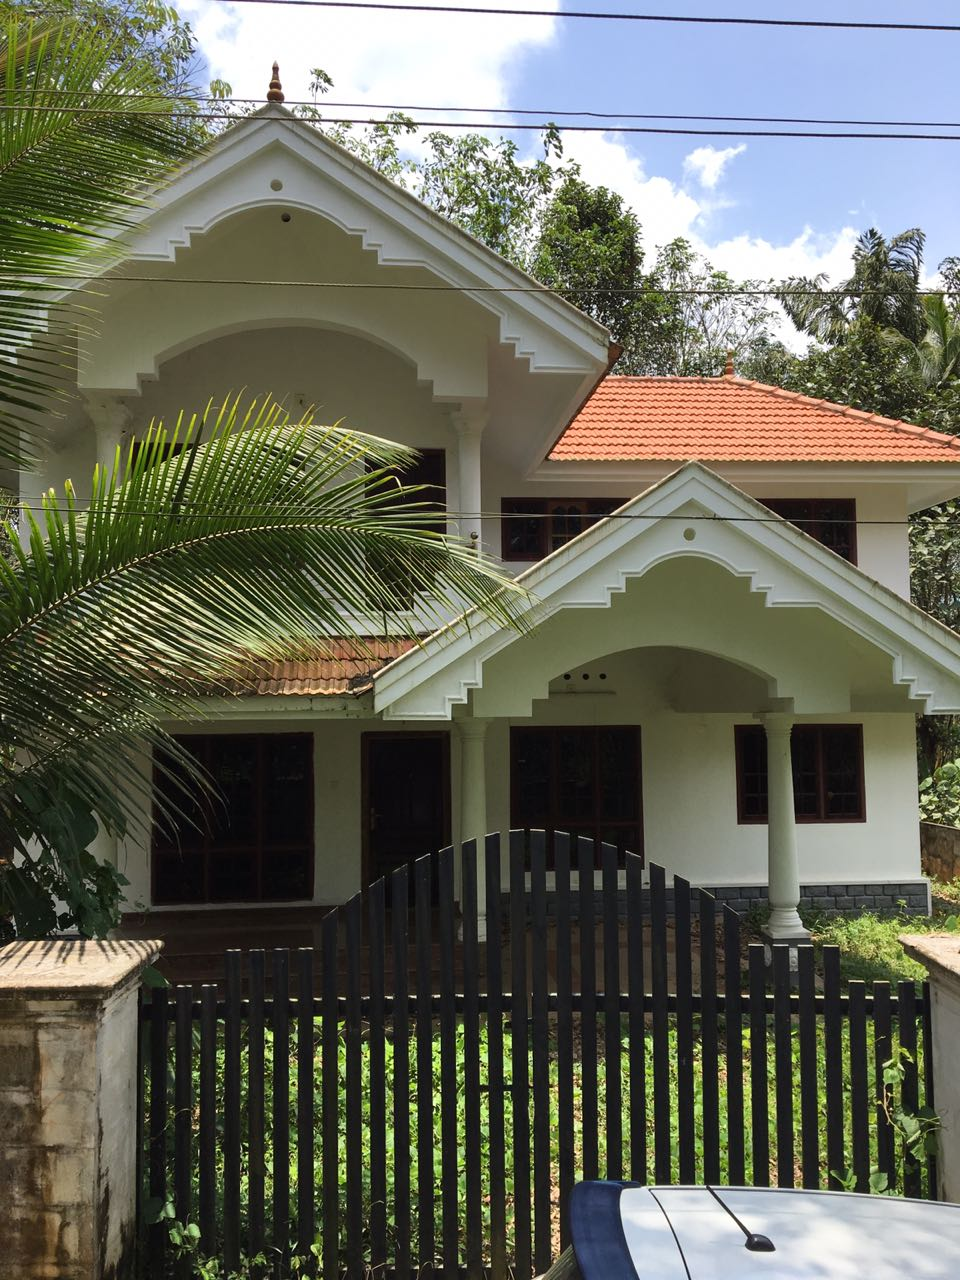 2300 Sqft 4 BHK Modern House for Sale at Manjoor, Kottayam – 65 Lakhs (Negotiable)